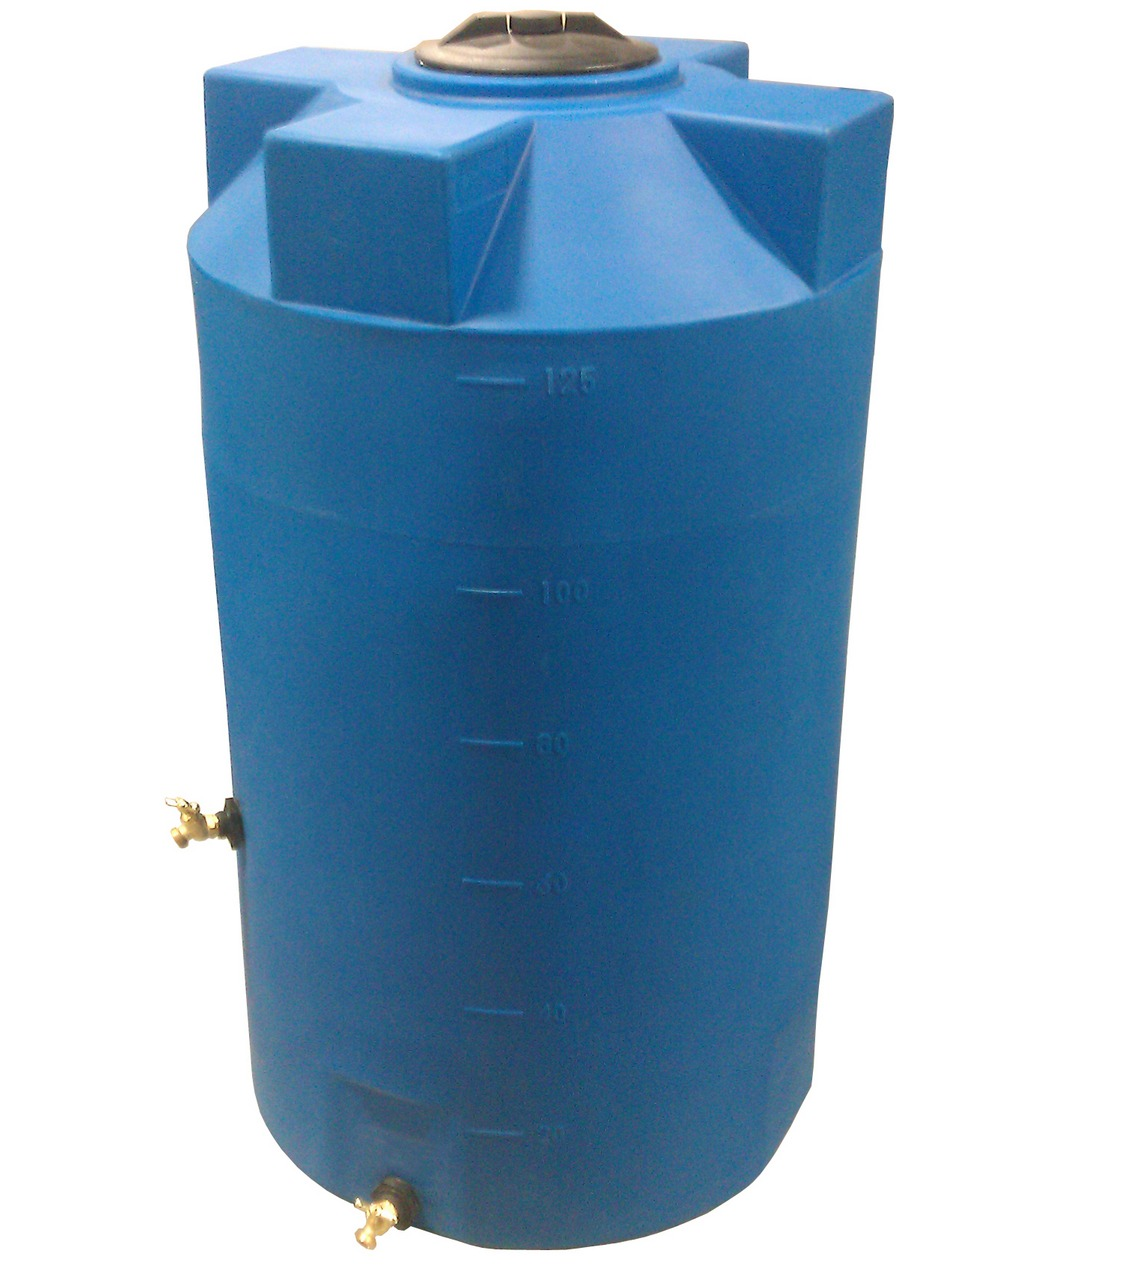 Plastic water storage tank porno amatuer squirtle for Plastic hot water tank